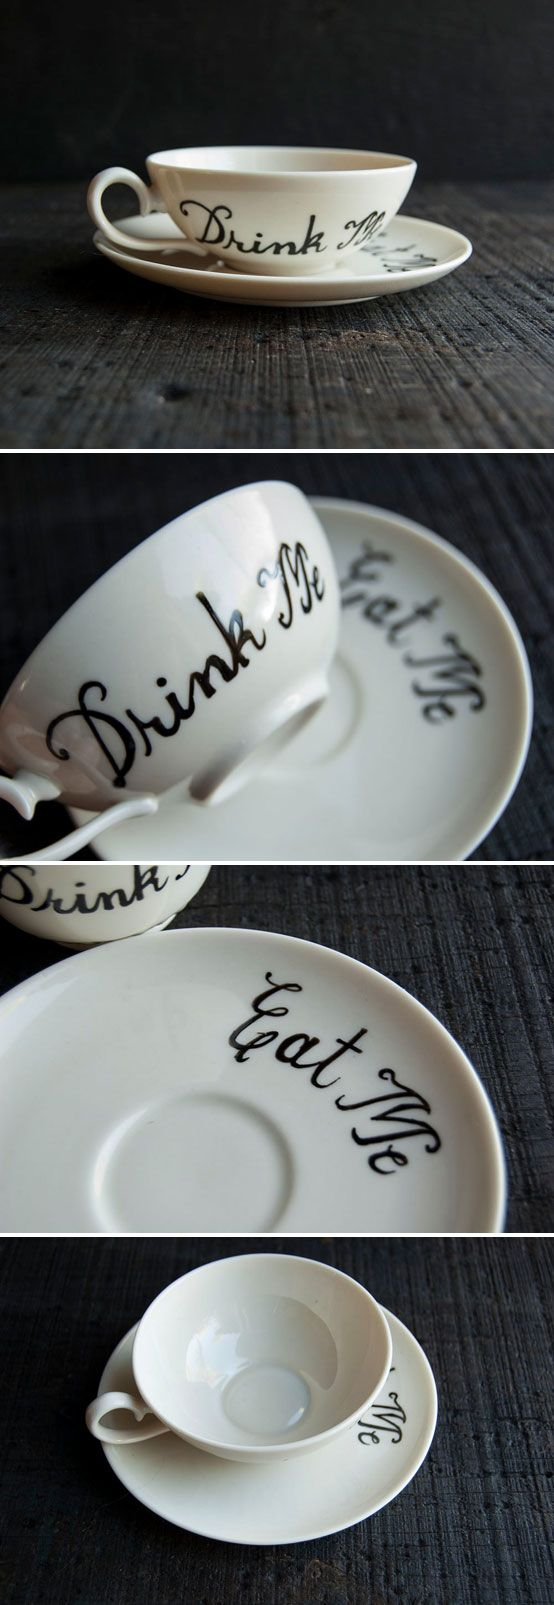 """Hand painted """"Drink Me"""" teacup w/ """"Eat Me"""" saucer... I've been looking for the perfect teacup & saucer to make myself a set! 